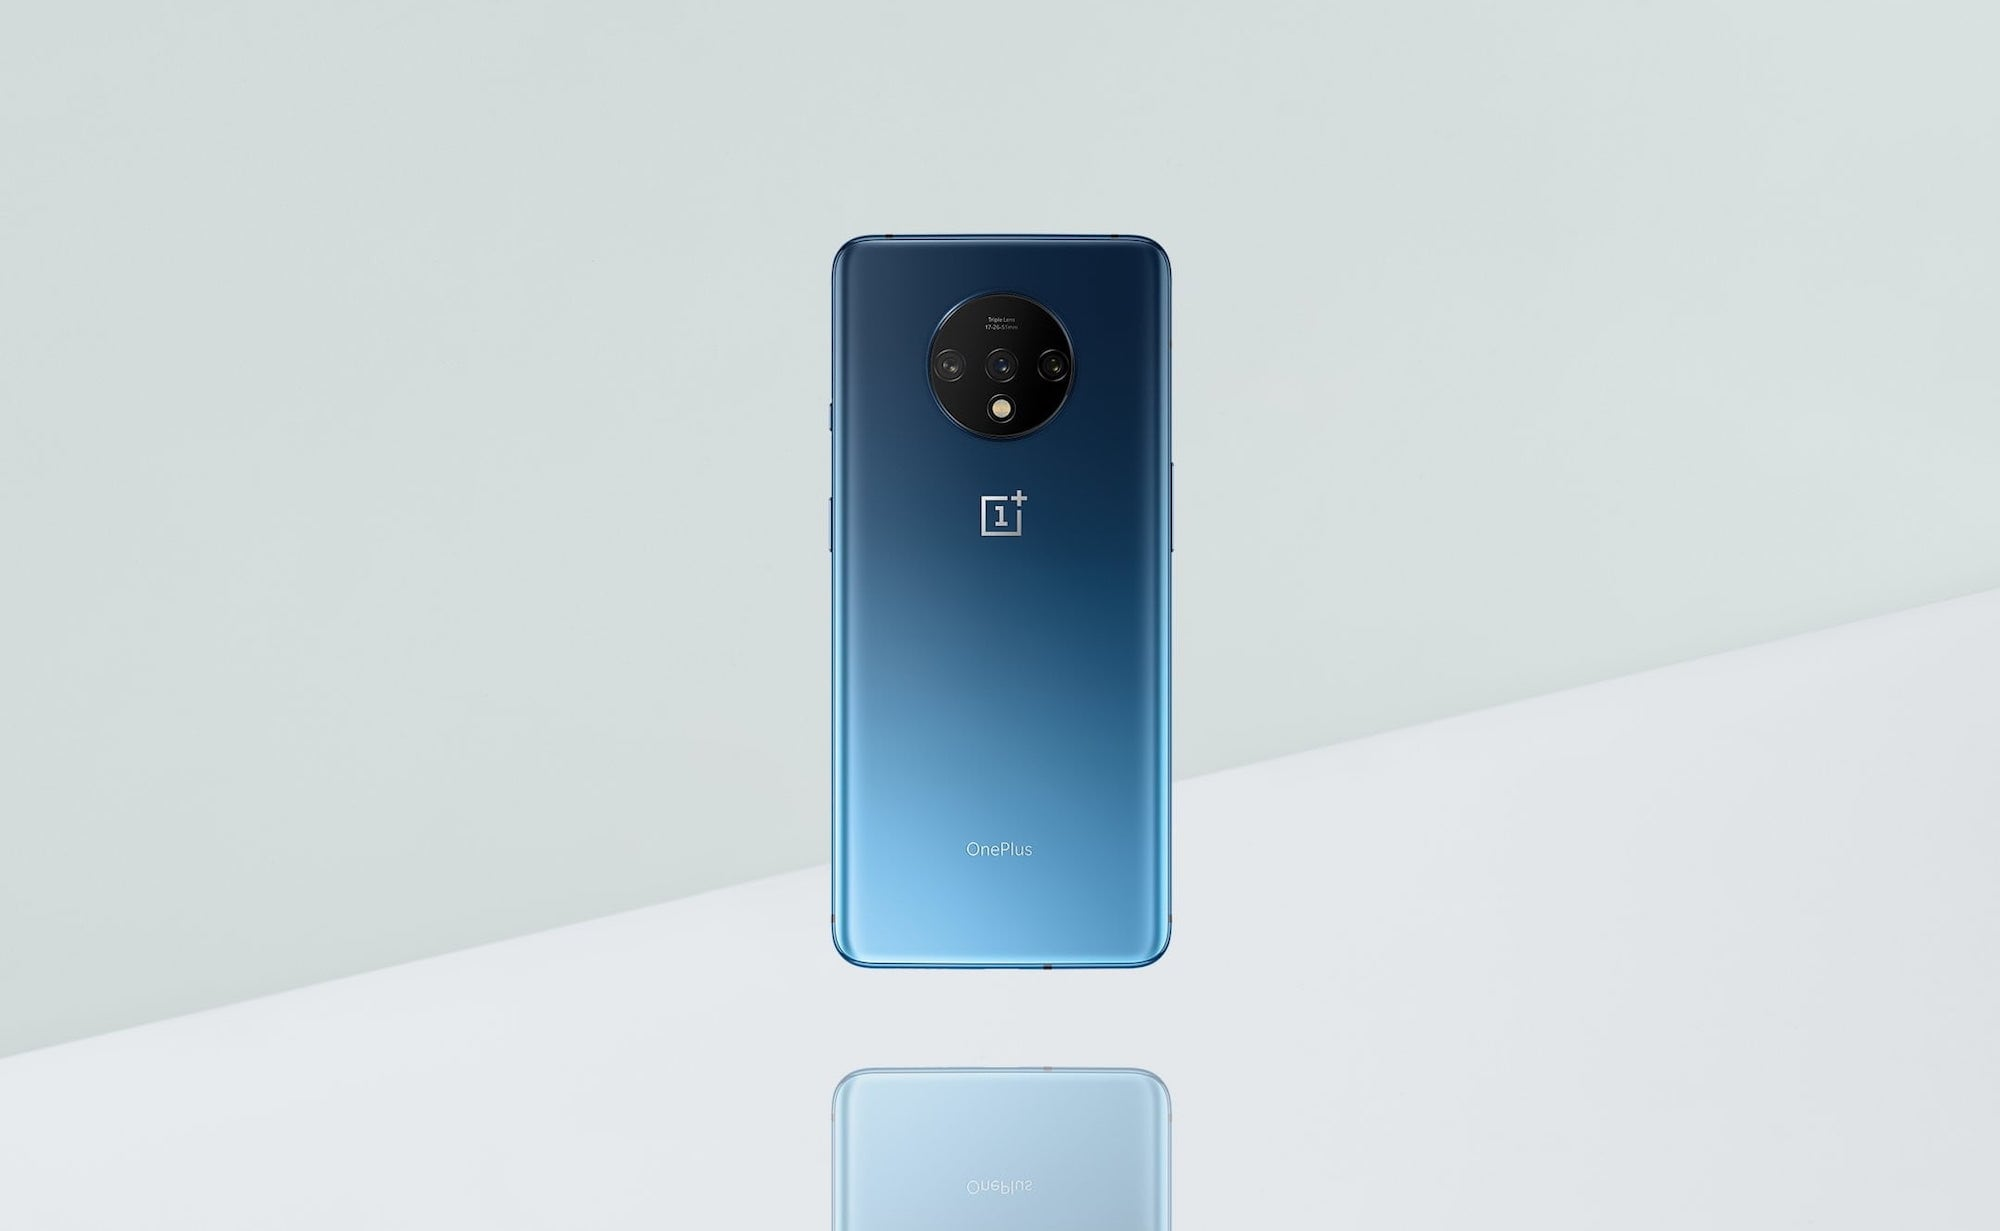 OnePlus 7T Narrow-Display Smartphone comes with Android 10 from the get-go